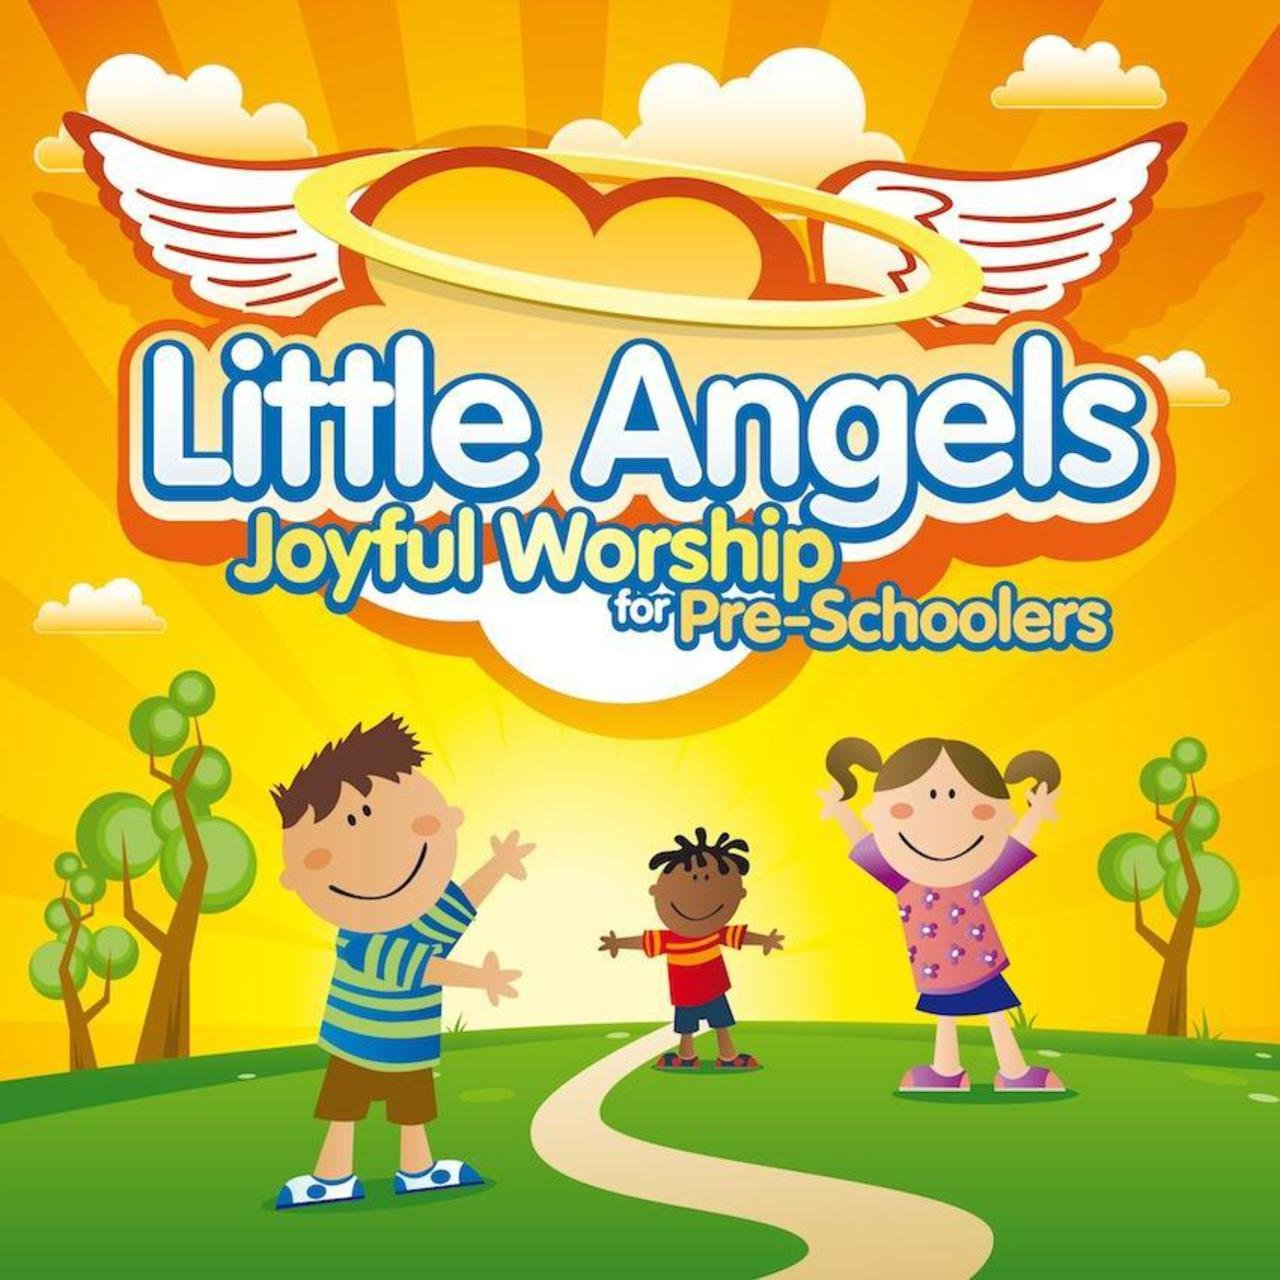 Little Angels: Joyful Worship for Pre-Schoolers